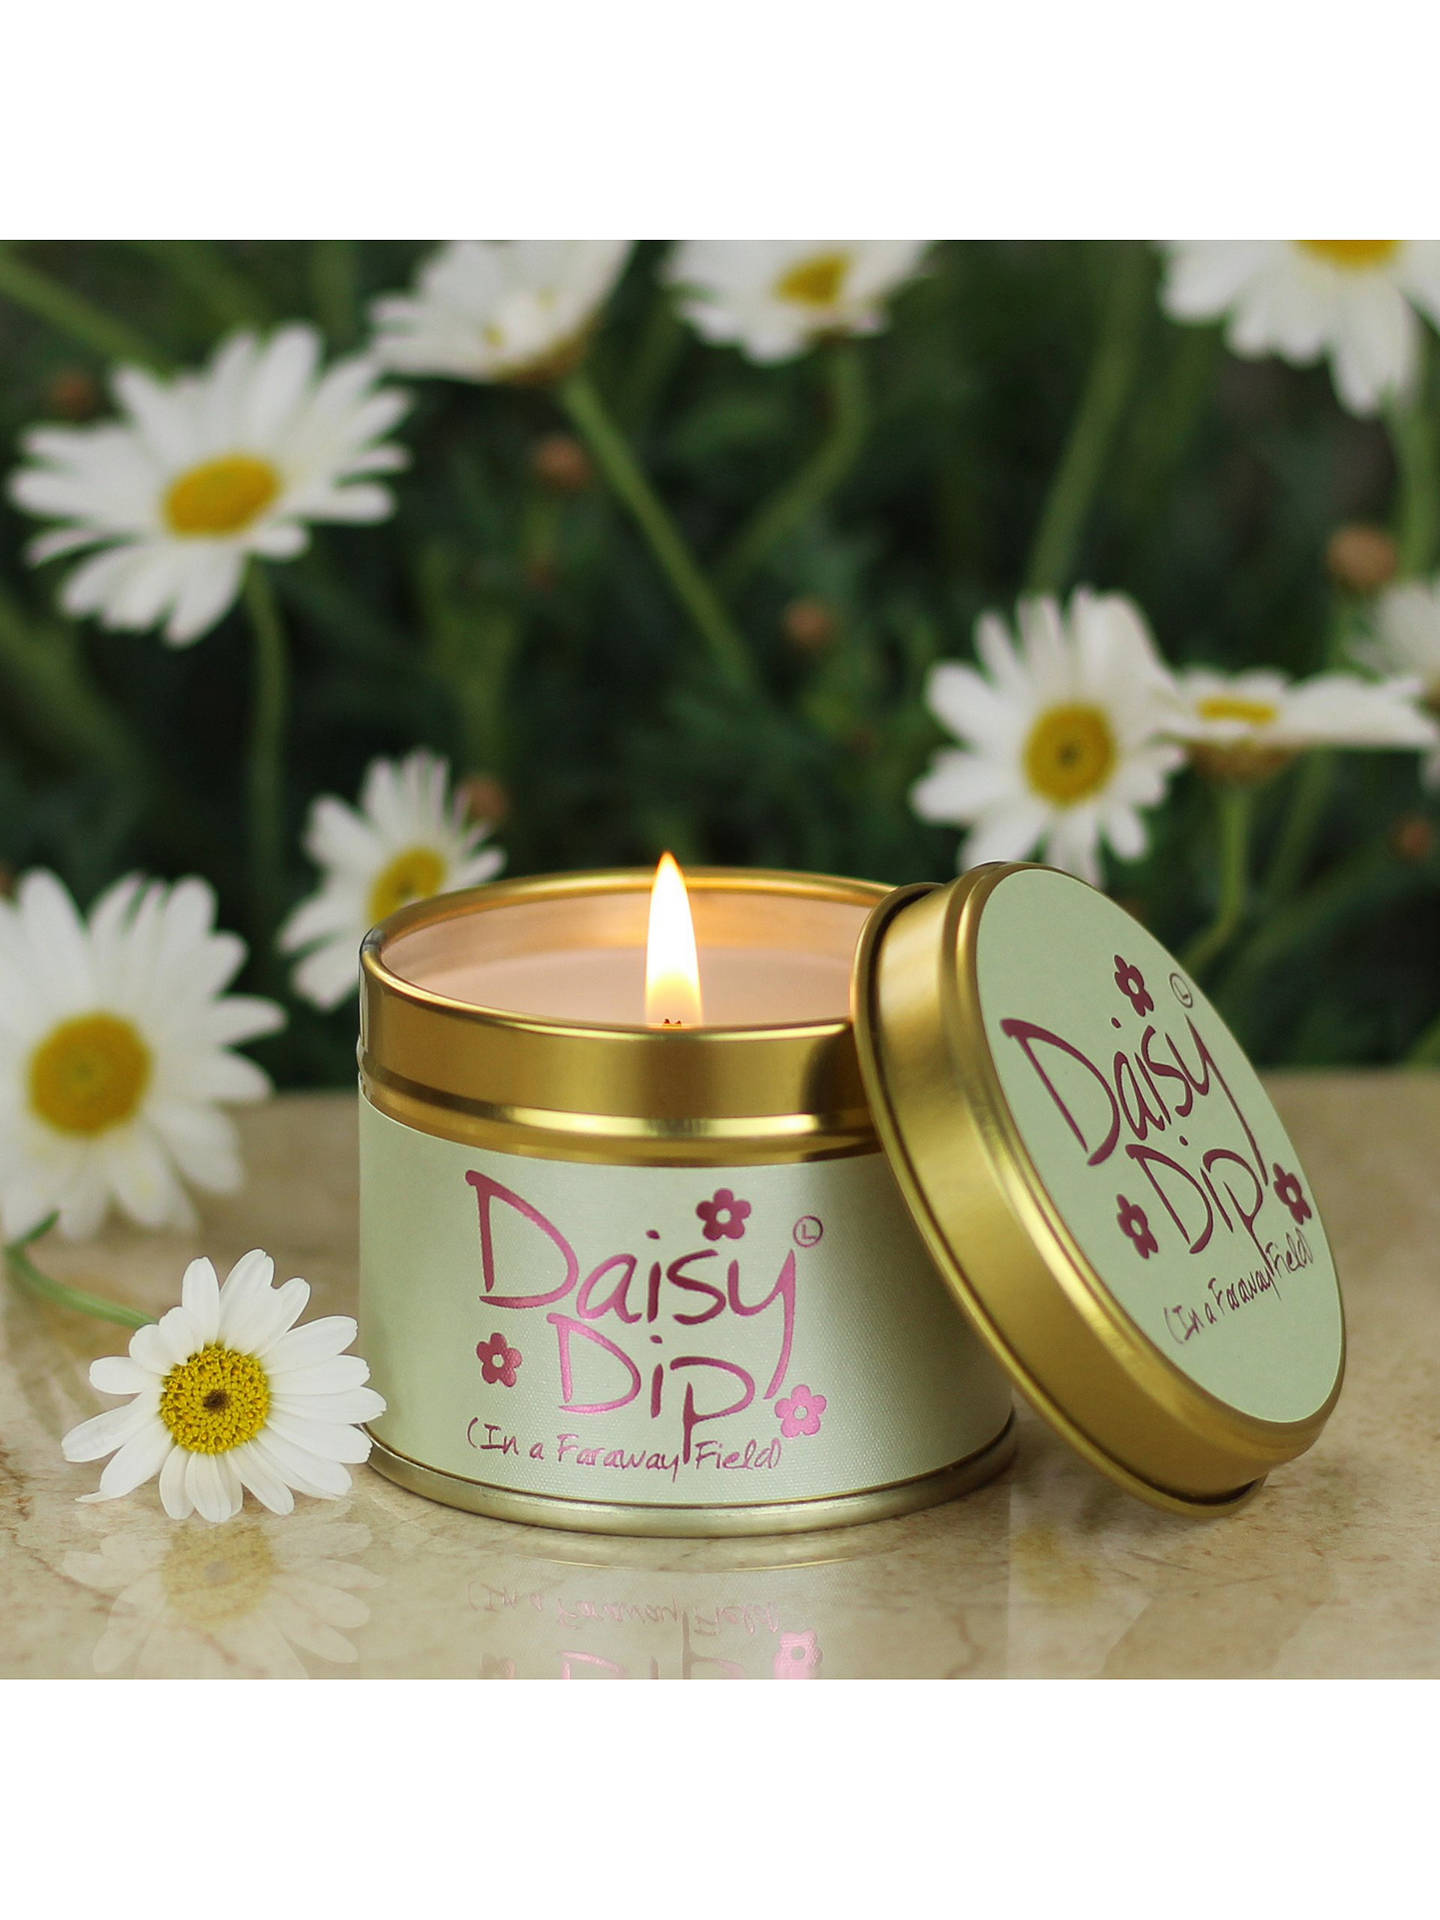 Buy Lily-flame Daisy Dip Mini Scented Tin Candle, 115g Online at johnlewis.com